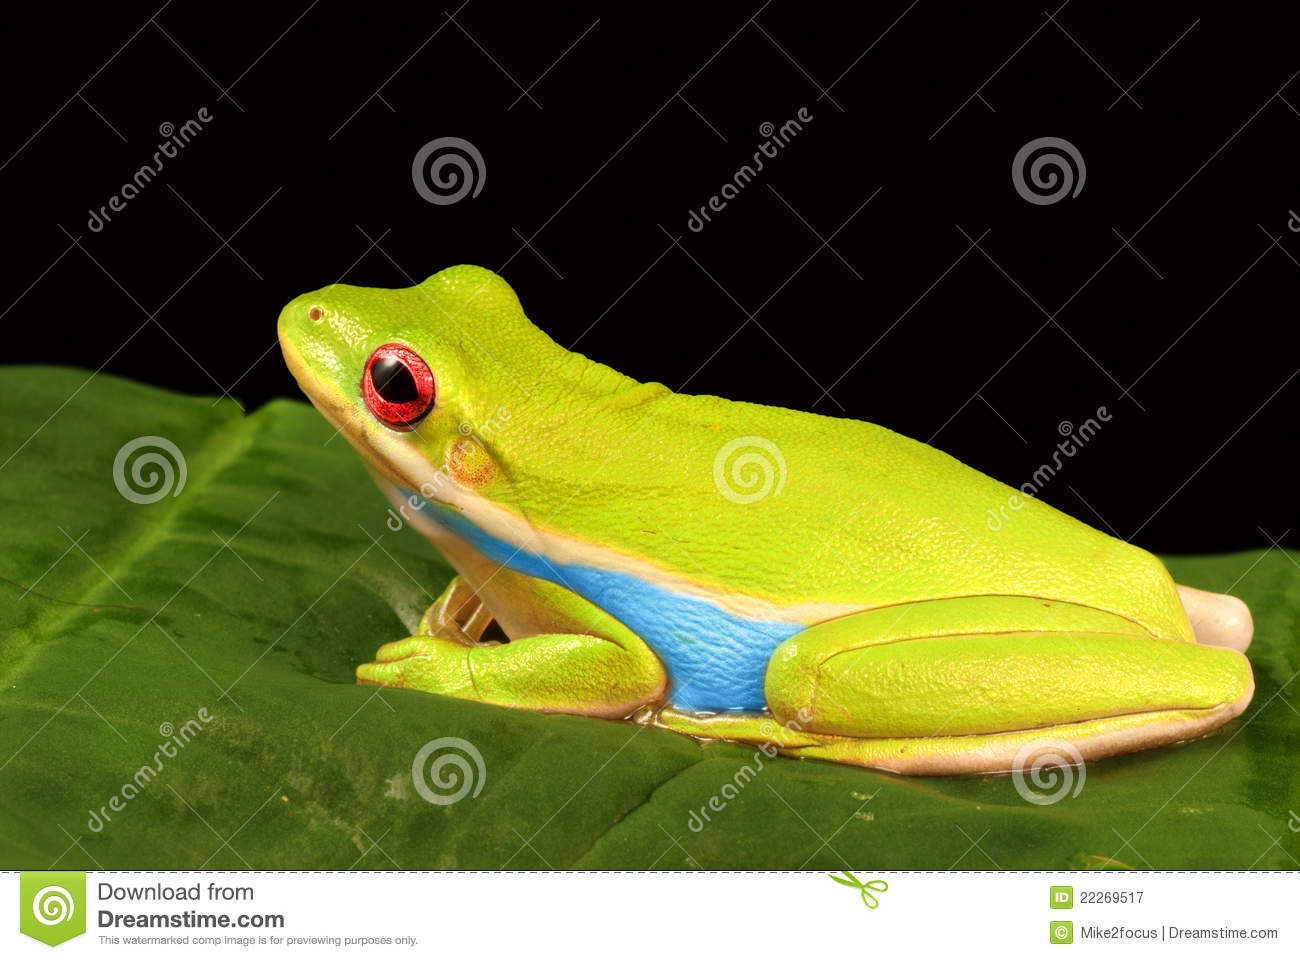 Colorful Tree Frog Against Black Background Stock Image - Image of ...